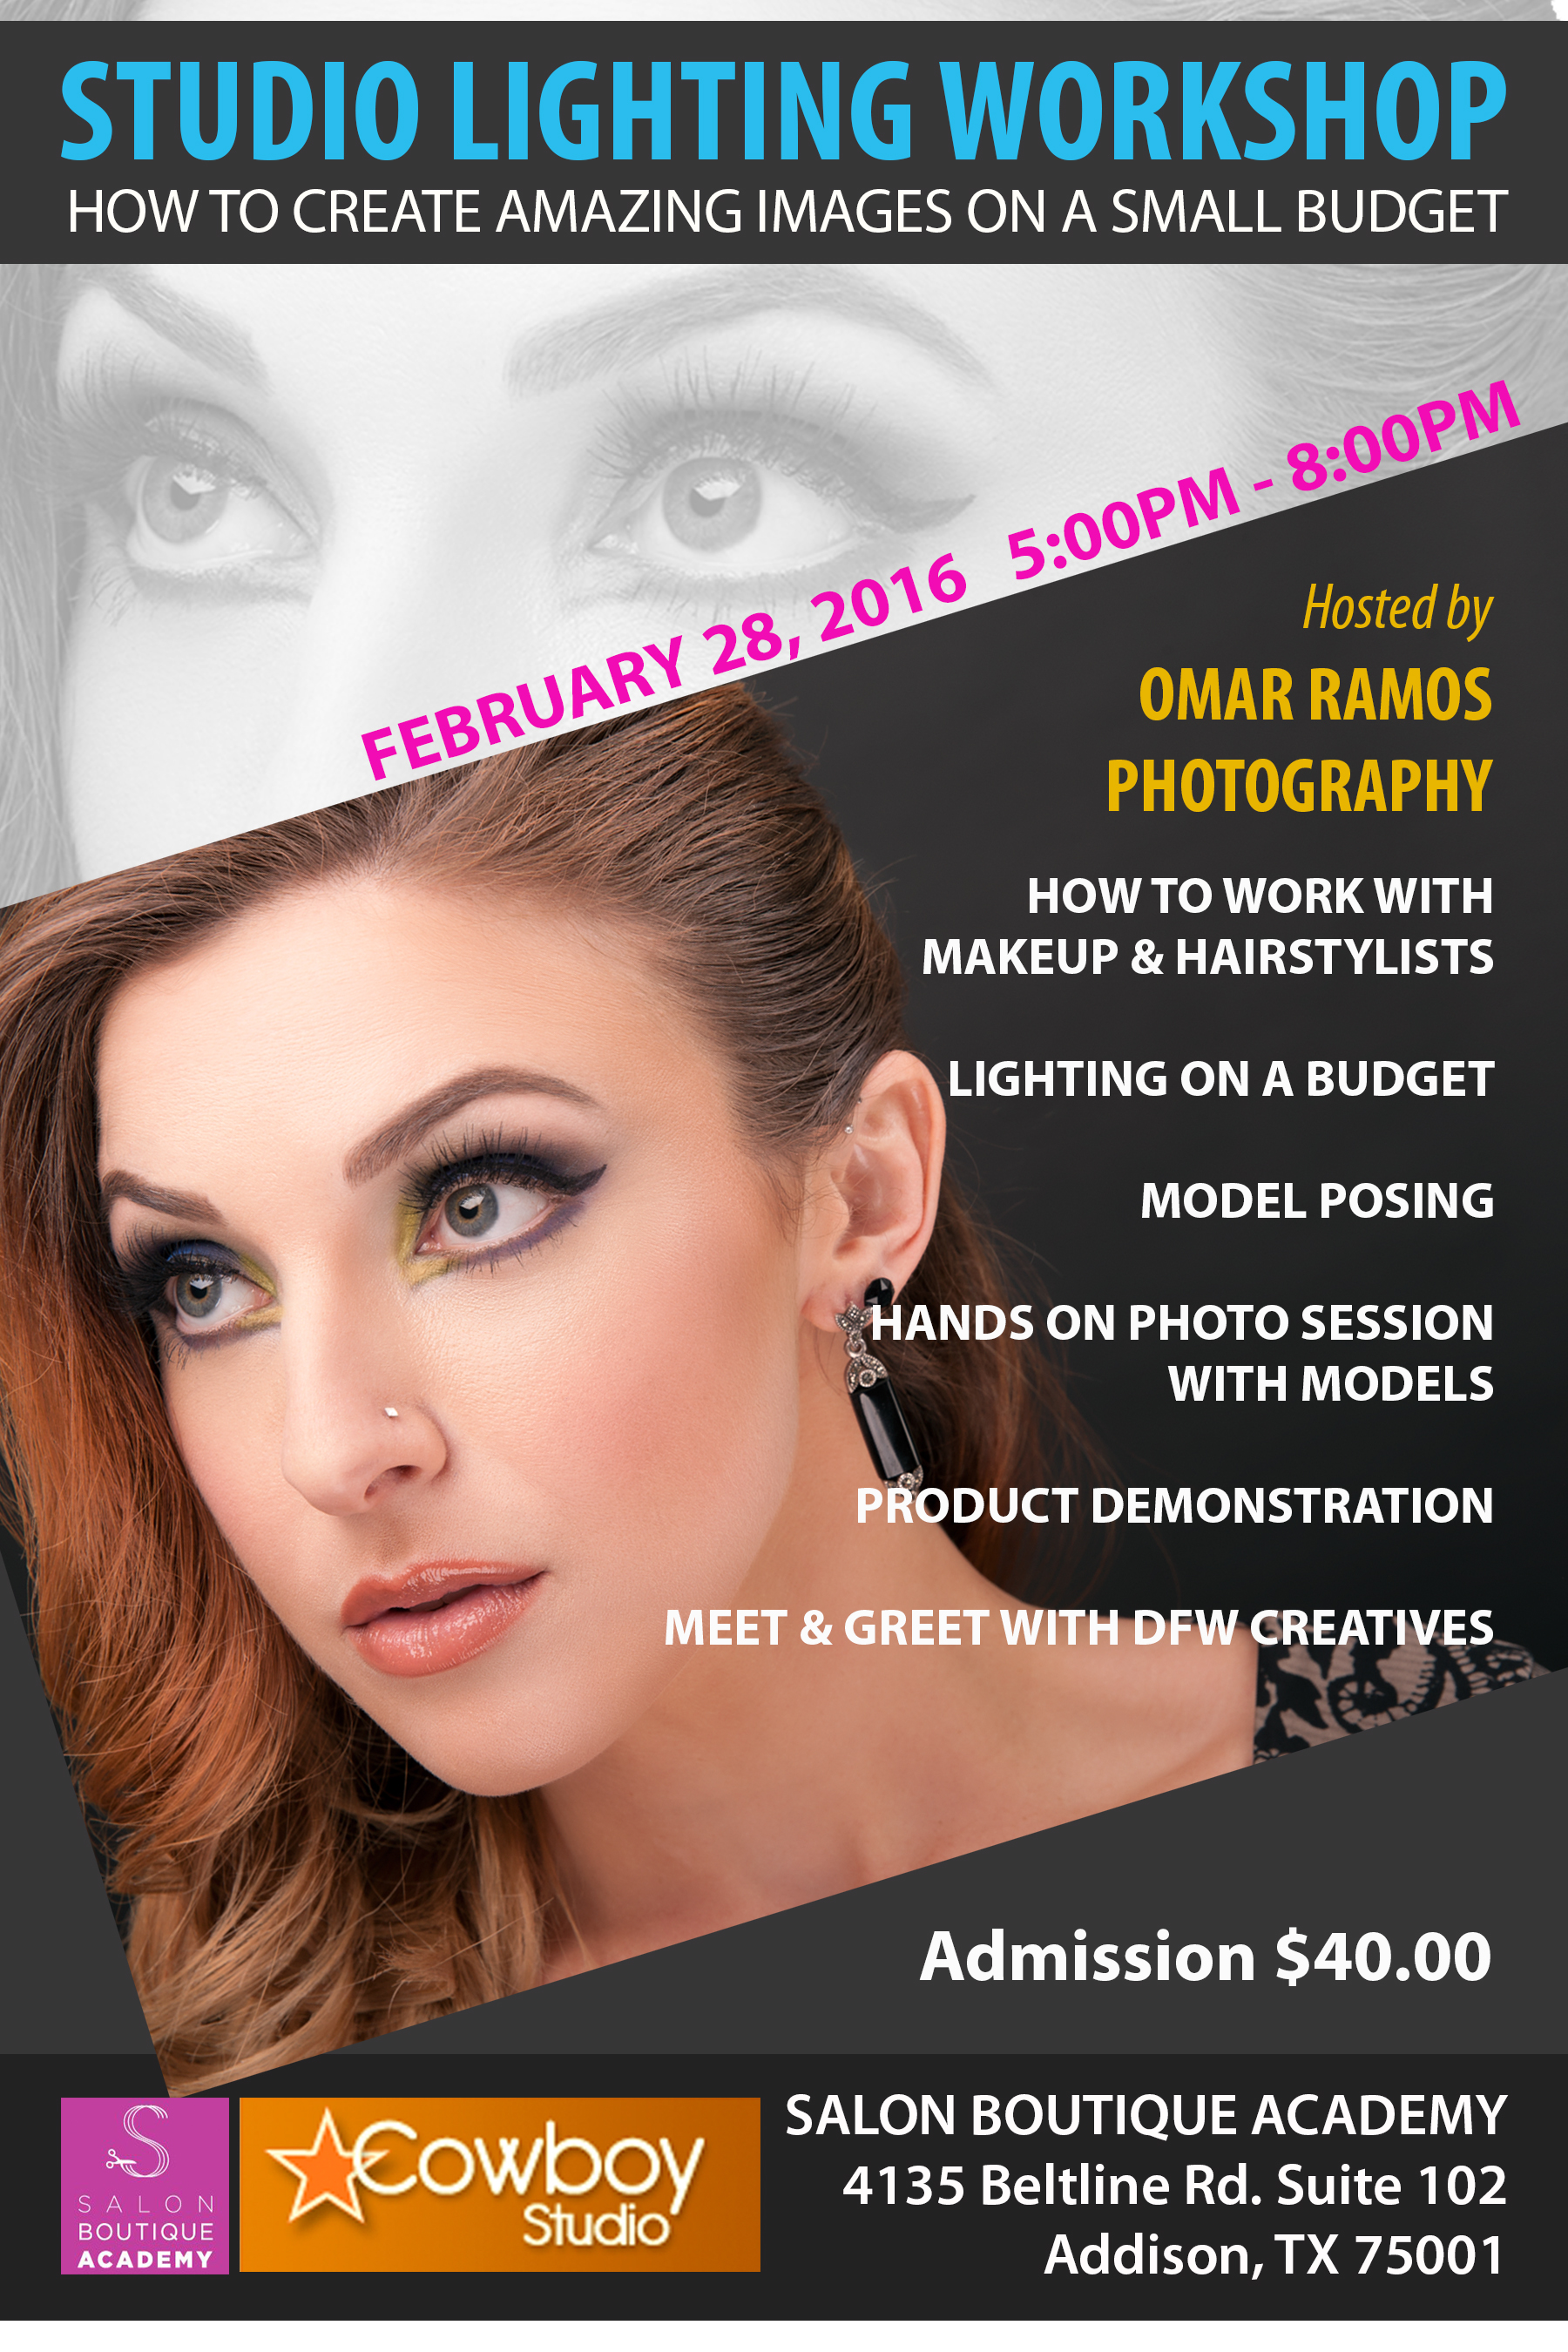 You can register online here: http://www.meetup.com/Small-Studio-Fashion-and-Portrait-Photography-Meetup/events/228414148/  https://www.eventbrite.com/e/photography-studio-lighting-workshop-tickets-21229318463